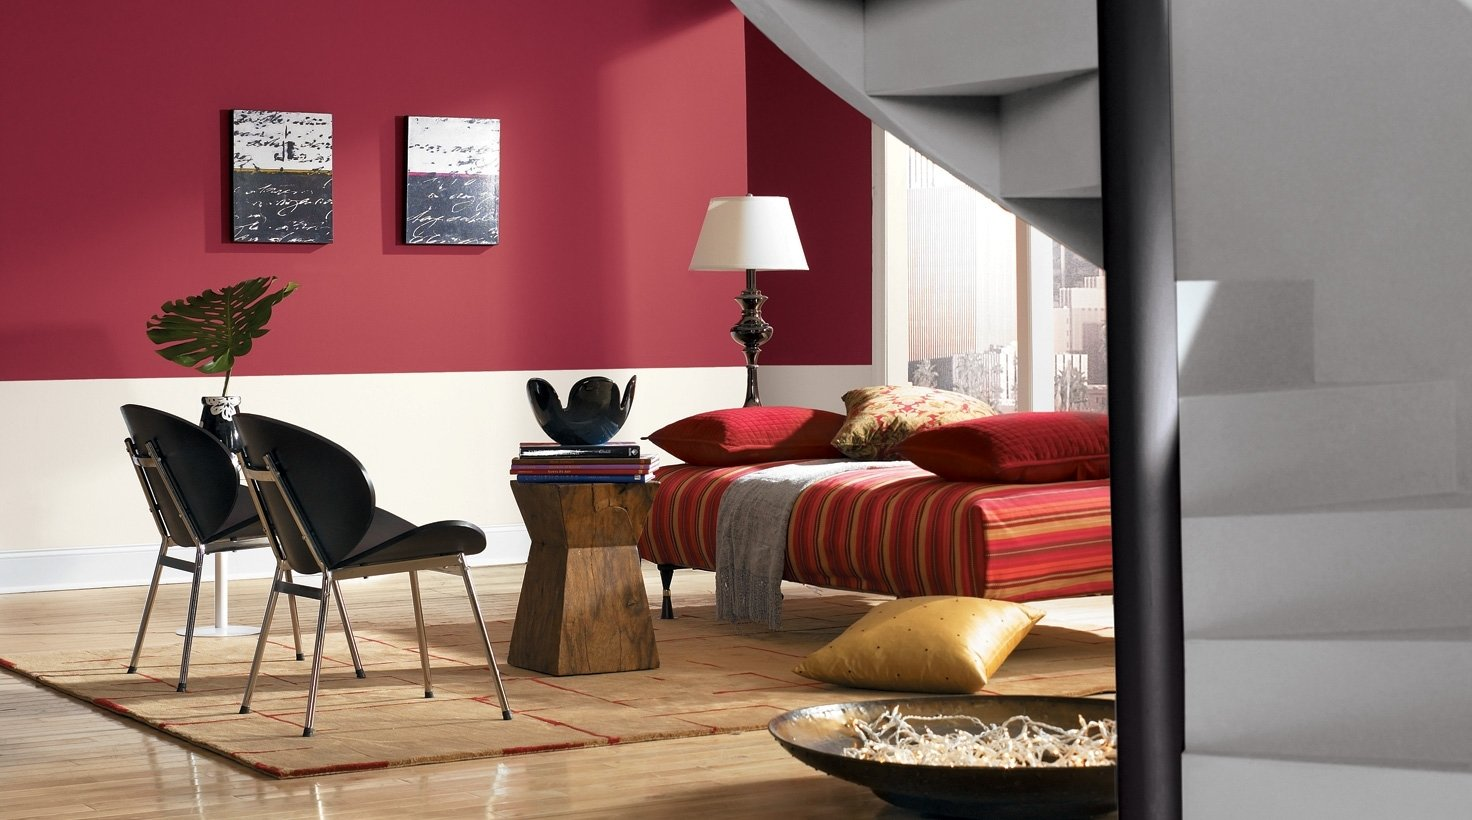 10 Unique Paint For Living Room Ideas living room paint color ideas inspiration gallery sherwin williams 30 2020